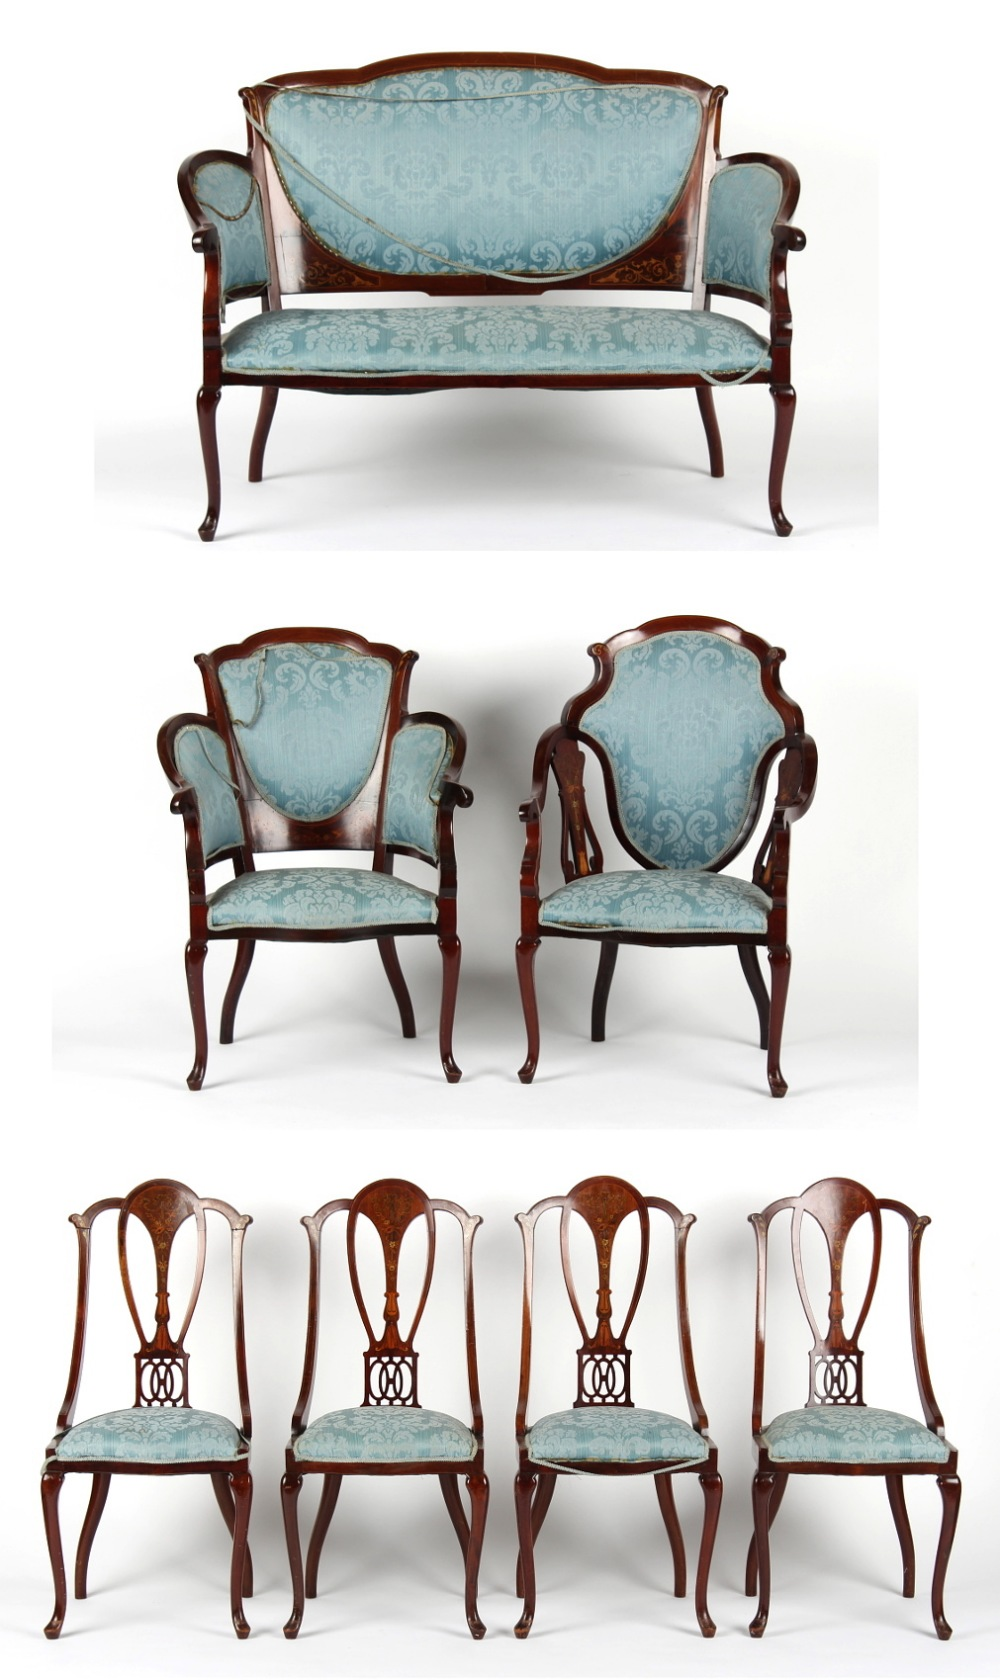 An Edwardian mahogany & marquetry inlaid seven piece salon suite, with patterned blue upholstery (